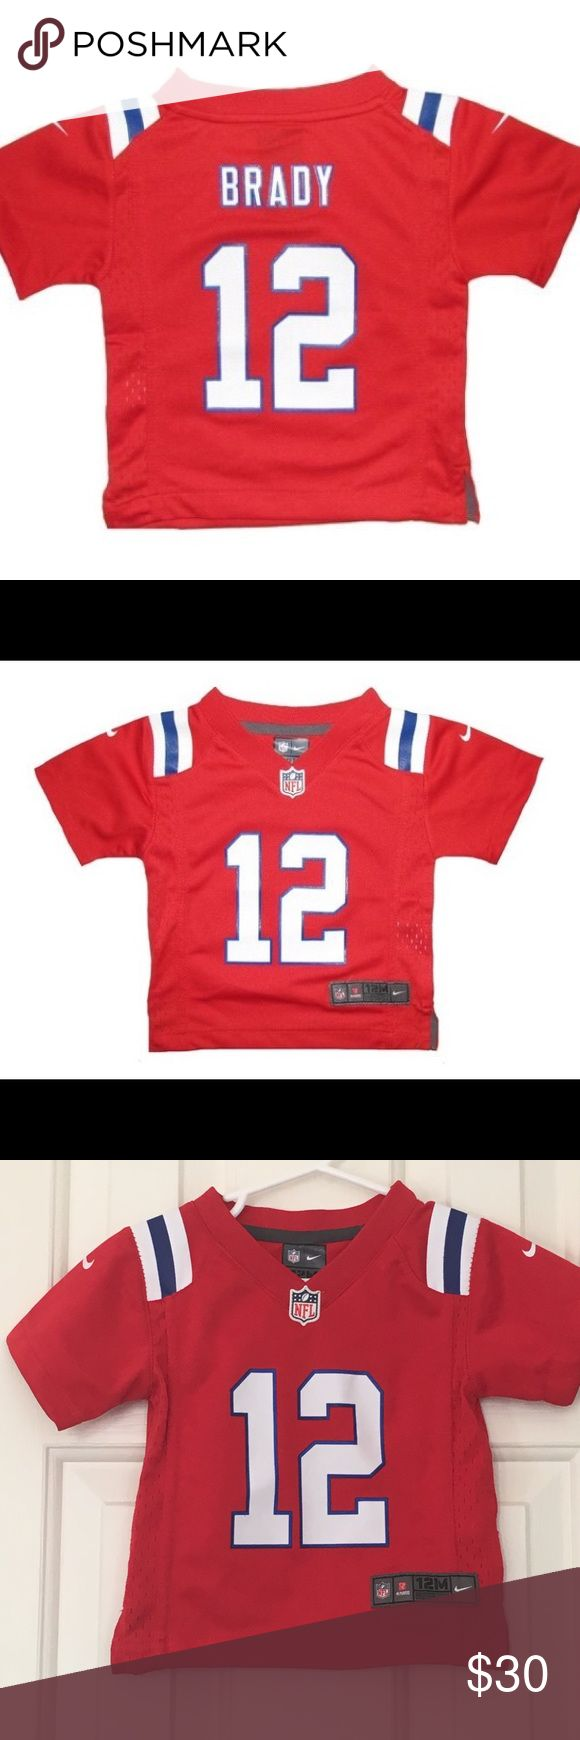 Infant Nike Tom Brady Throwback Jersey-Red The Infant Nike Tom Brady Throwback Jersey-Red is the perfect game day jersey for your littlest Patriots fan! This Nike jersey is a scaled down version of the kids and adult Nike jerseys, featuring the same New England Patriots throwback jersey design. Great condition. Nike Shirts & Tops Tees - Short Sleeve